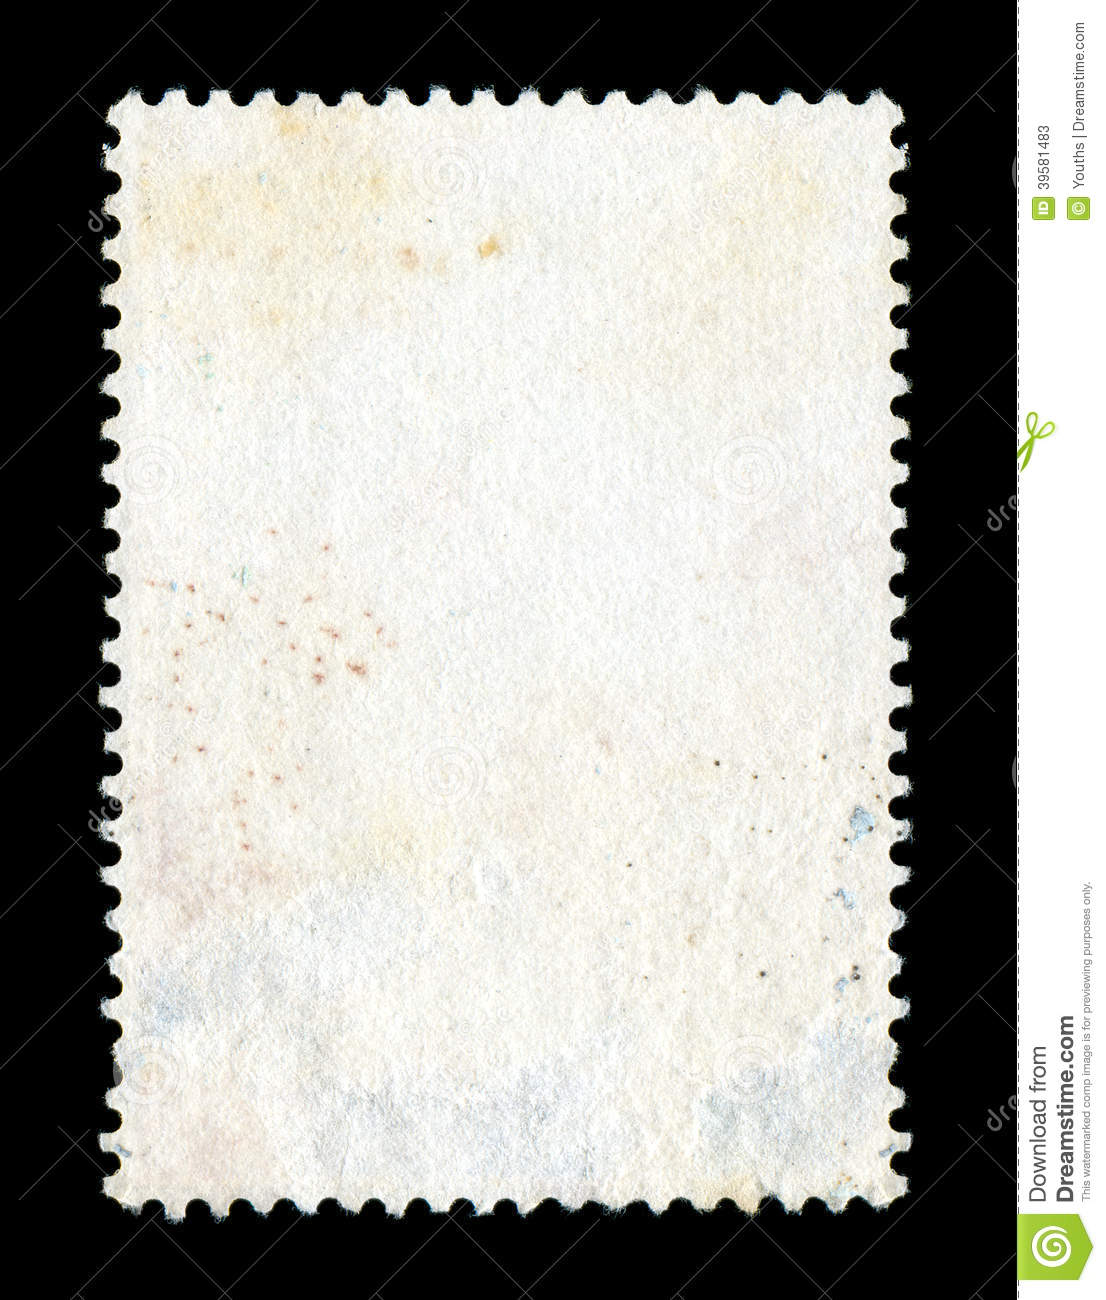 Blank Postage Stamp Background Stock Photo Image 39581483